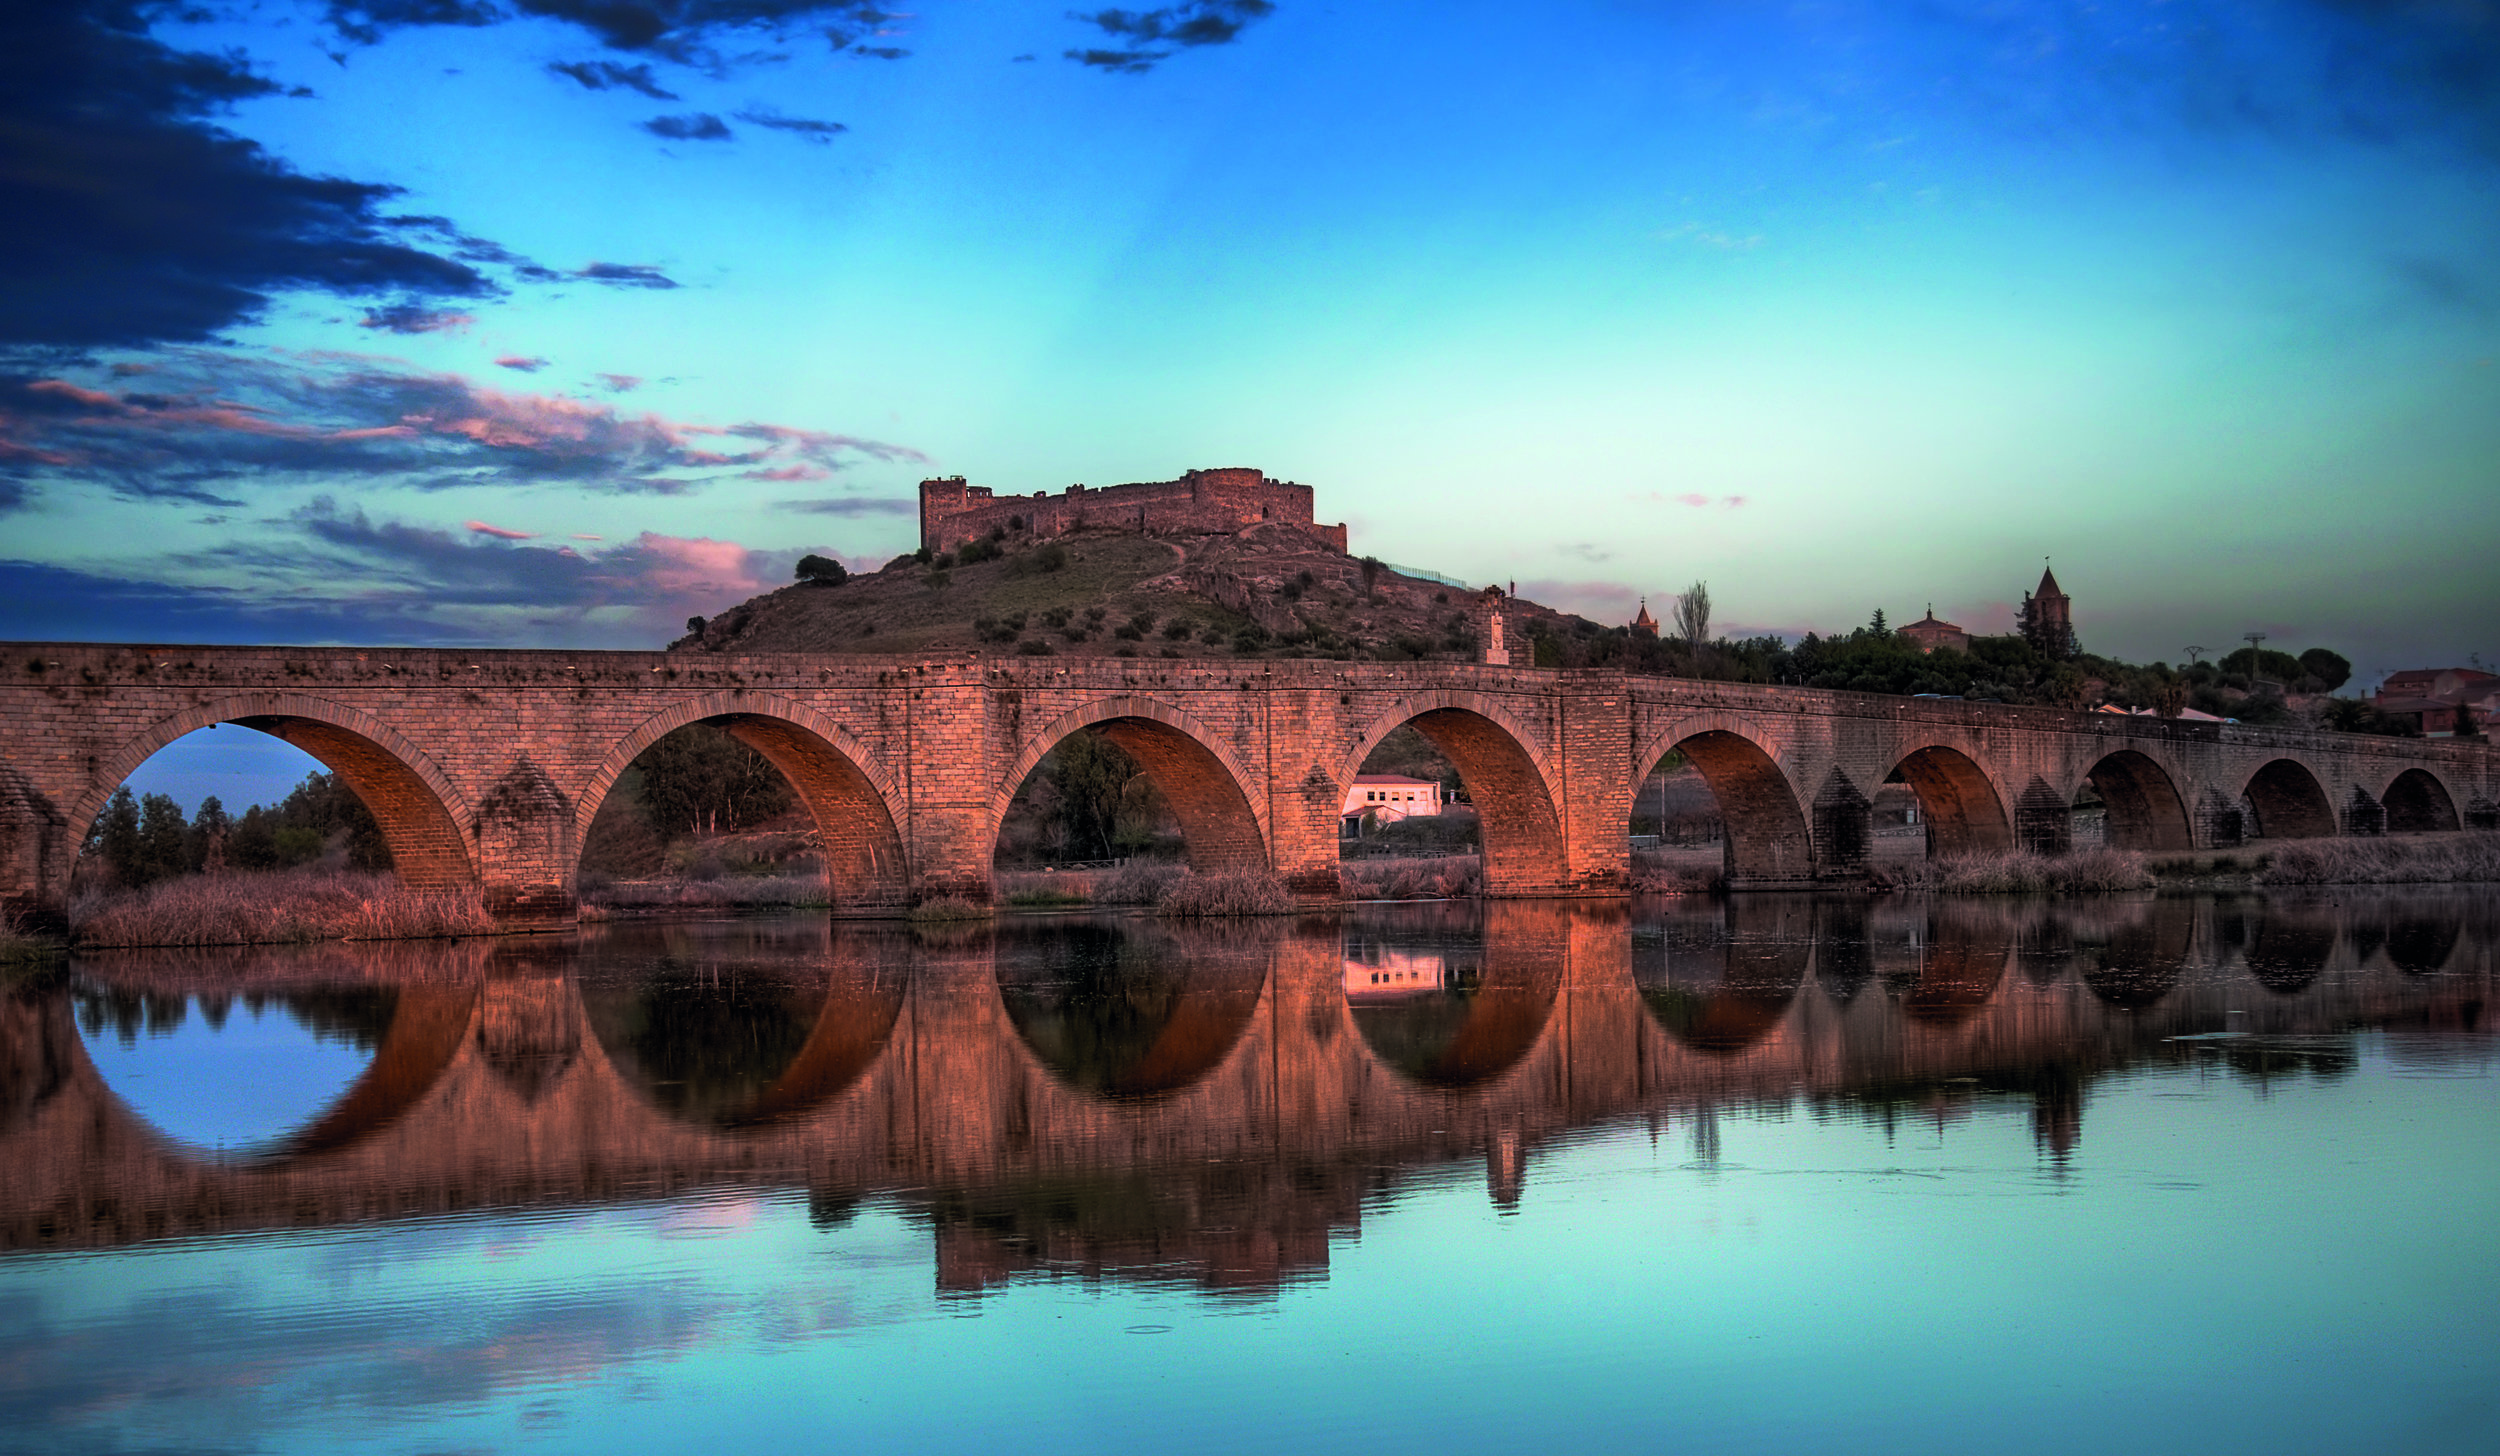 The Gorgeous Medellin Bridge! You Could See Intruders Coming From Miles Away! Knights Would Alert the Townsmen and Villagers to Prepare. Photo Credit: Courtesy of Extremadura Tourism